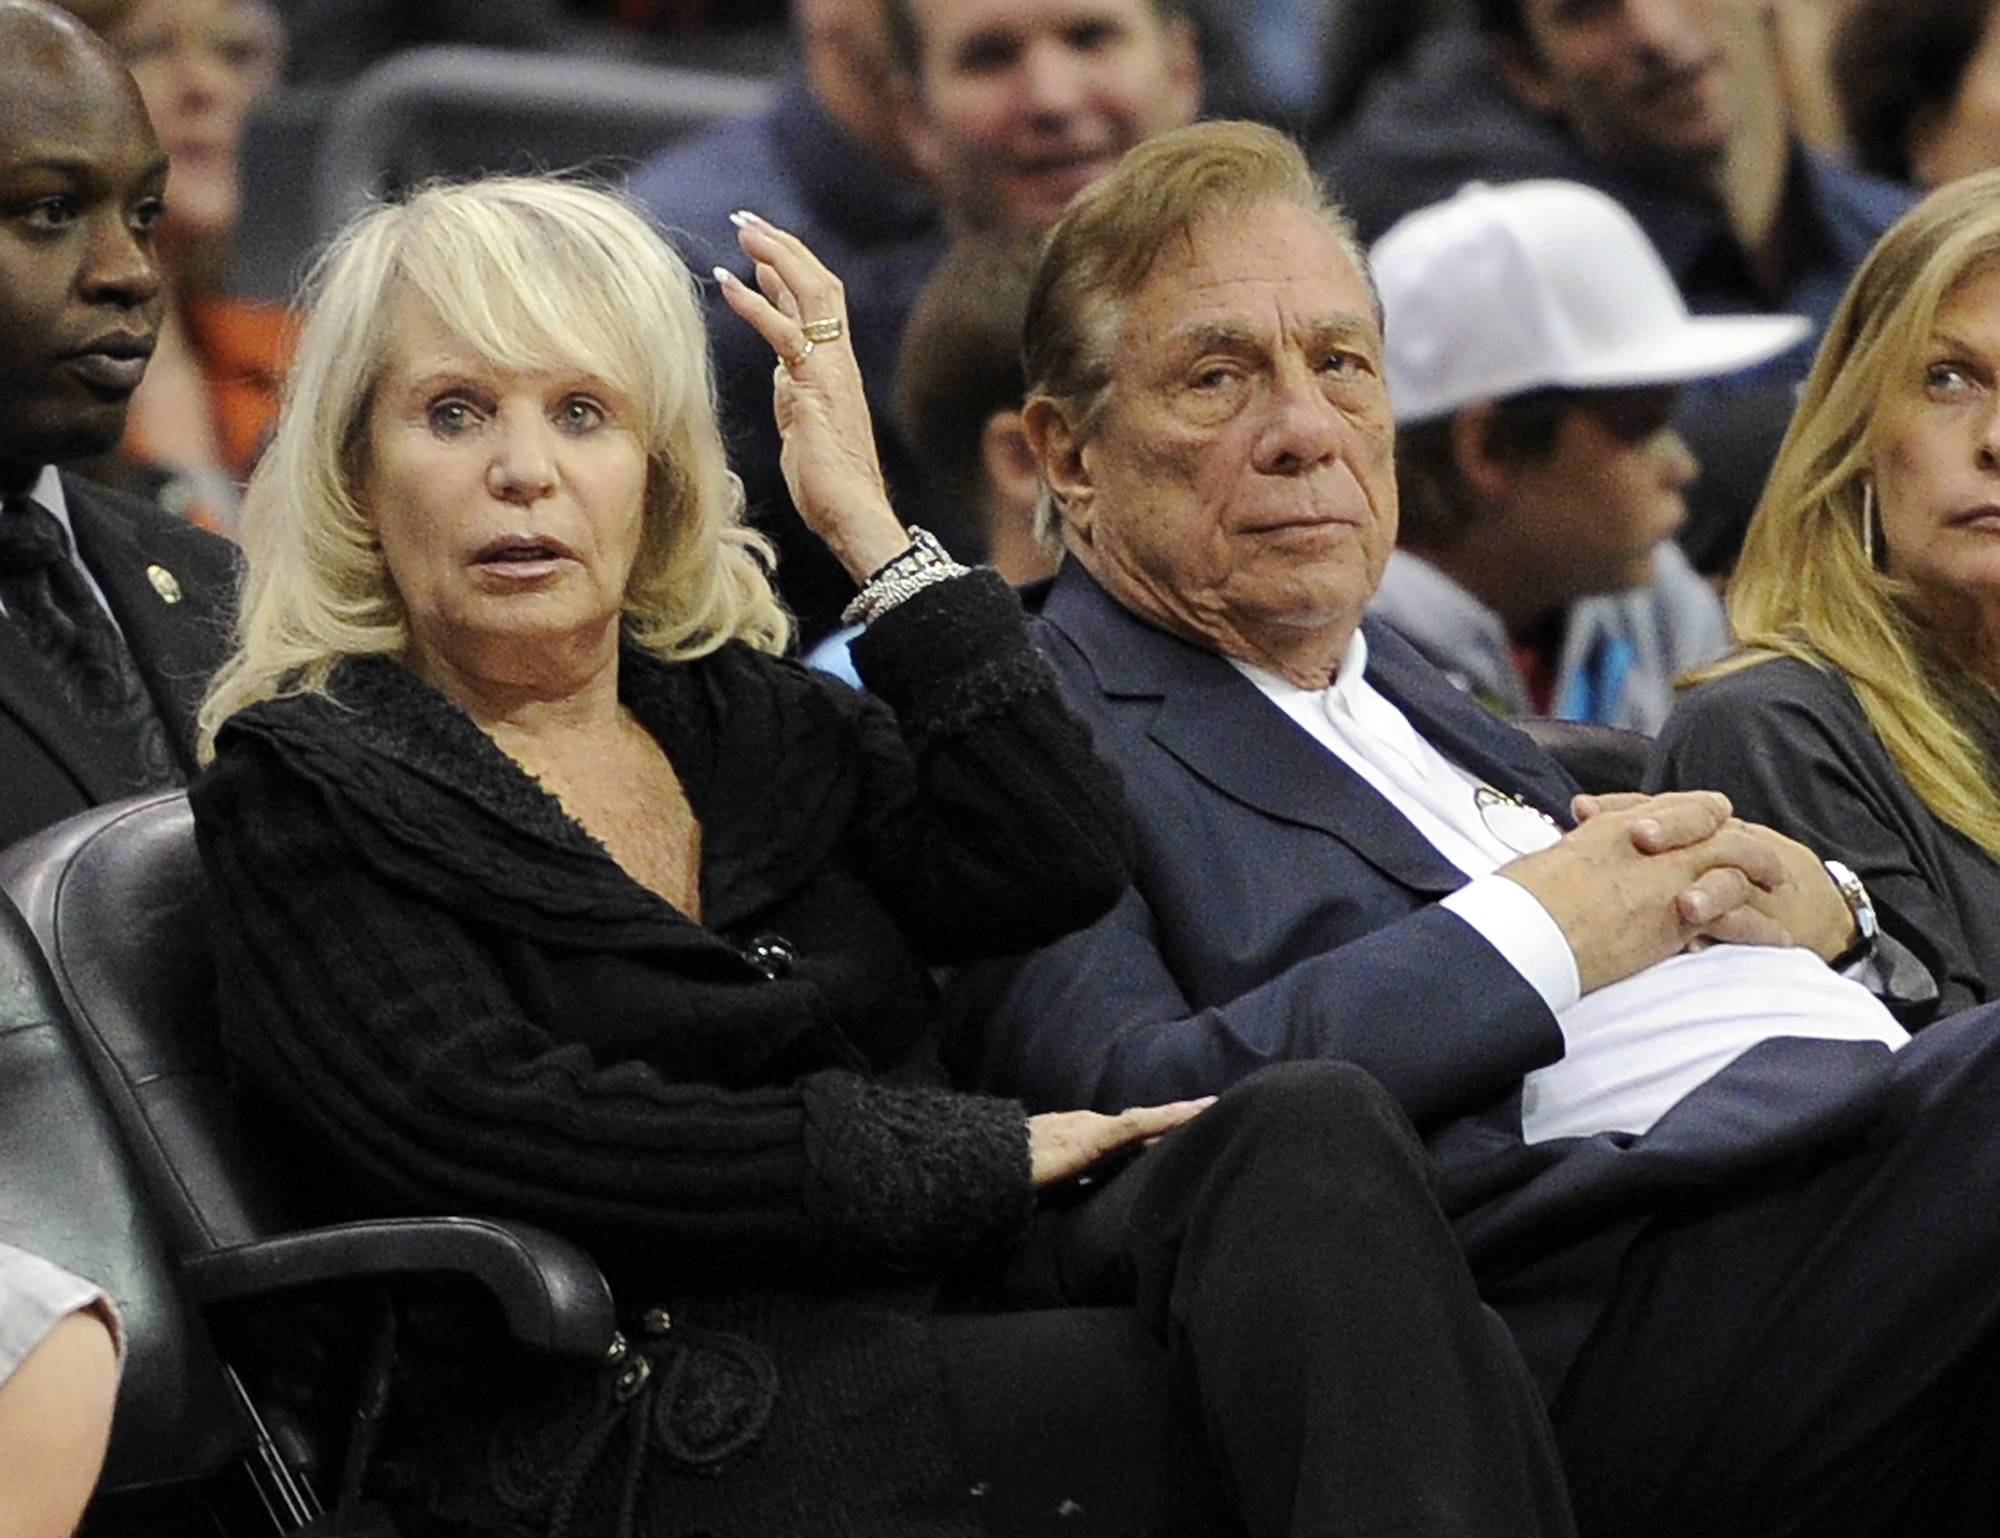 "Los Angeles Clippers owner Donald Sterling agreed Wednesday to sign off on selling the team to former Microsoft CEO Steve Ballmer for what would be a record $2 billion, according to his attorney.Sterling ""has made an agreement with the NBA to resolve all their differences"" and as co-owner has given his consent to a deal that was negotiated by his wife, Shelly Sterling, to sell the team, said attorney Maxwell Blecher."